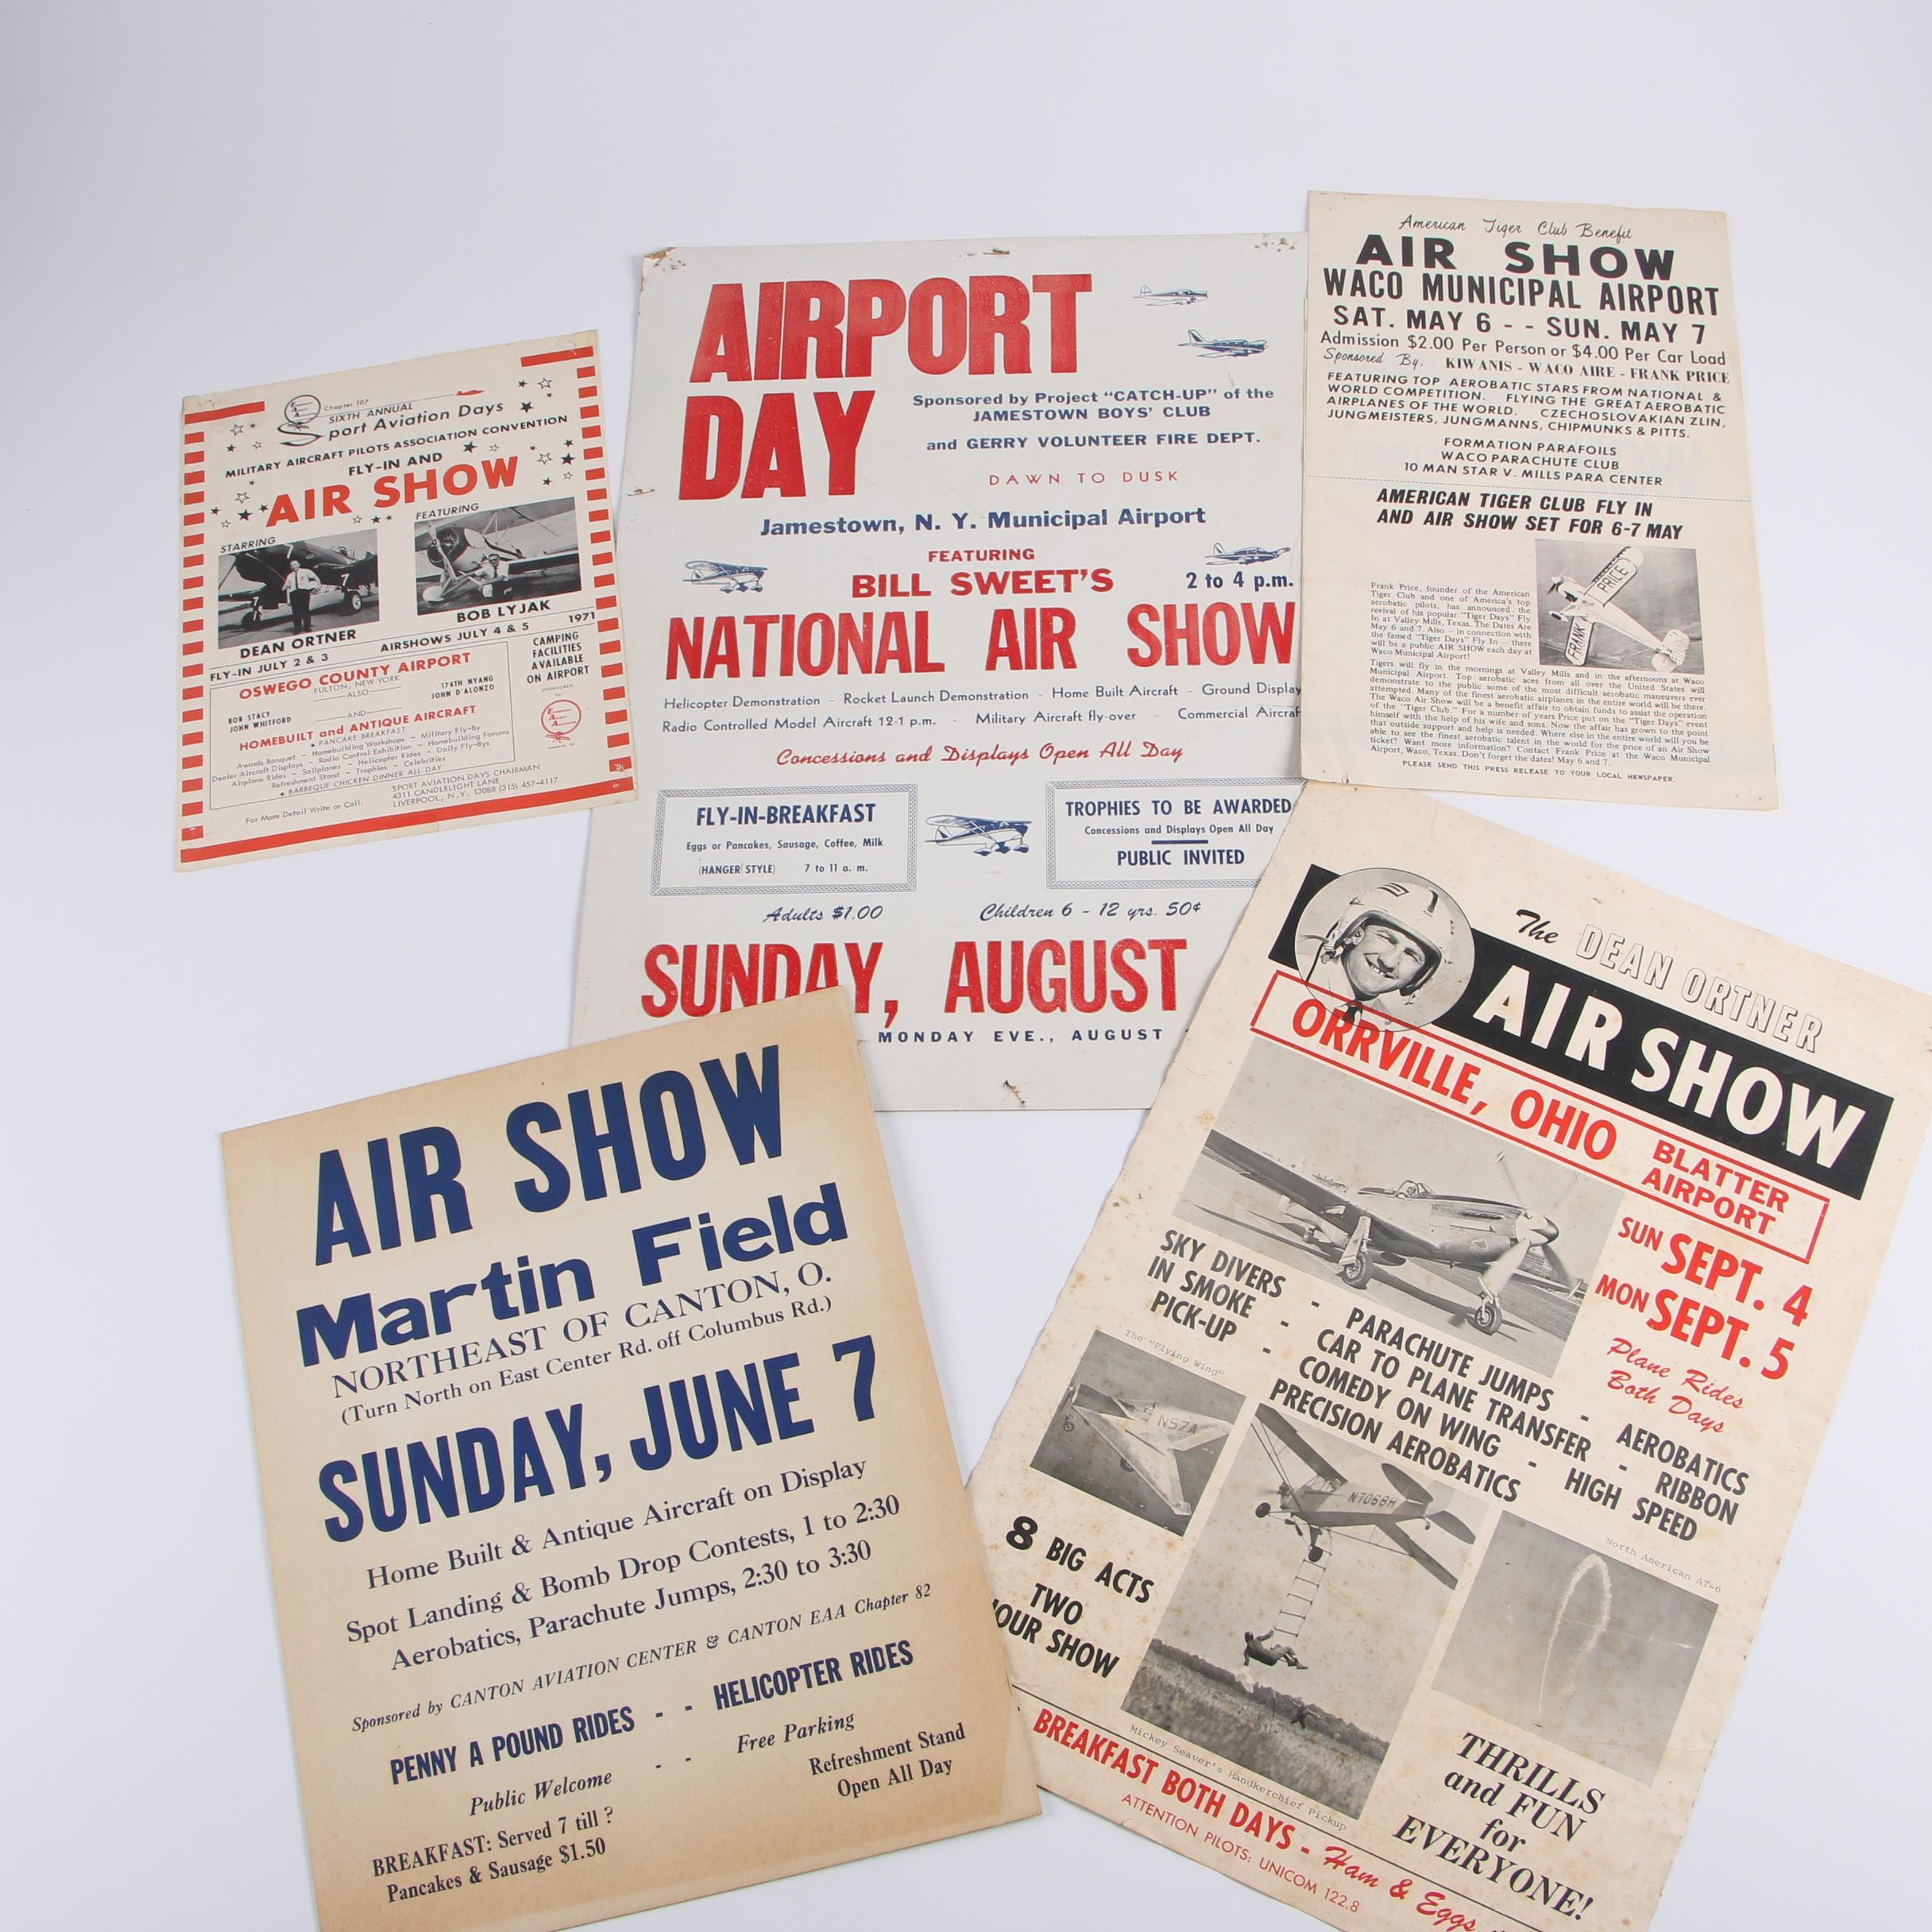 1960s-1970s Air Show Posters and Flyers